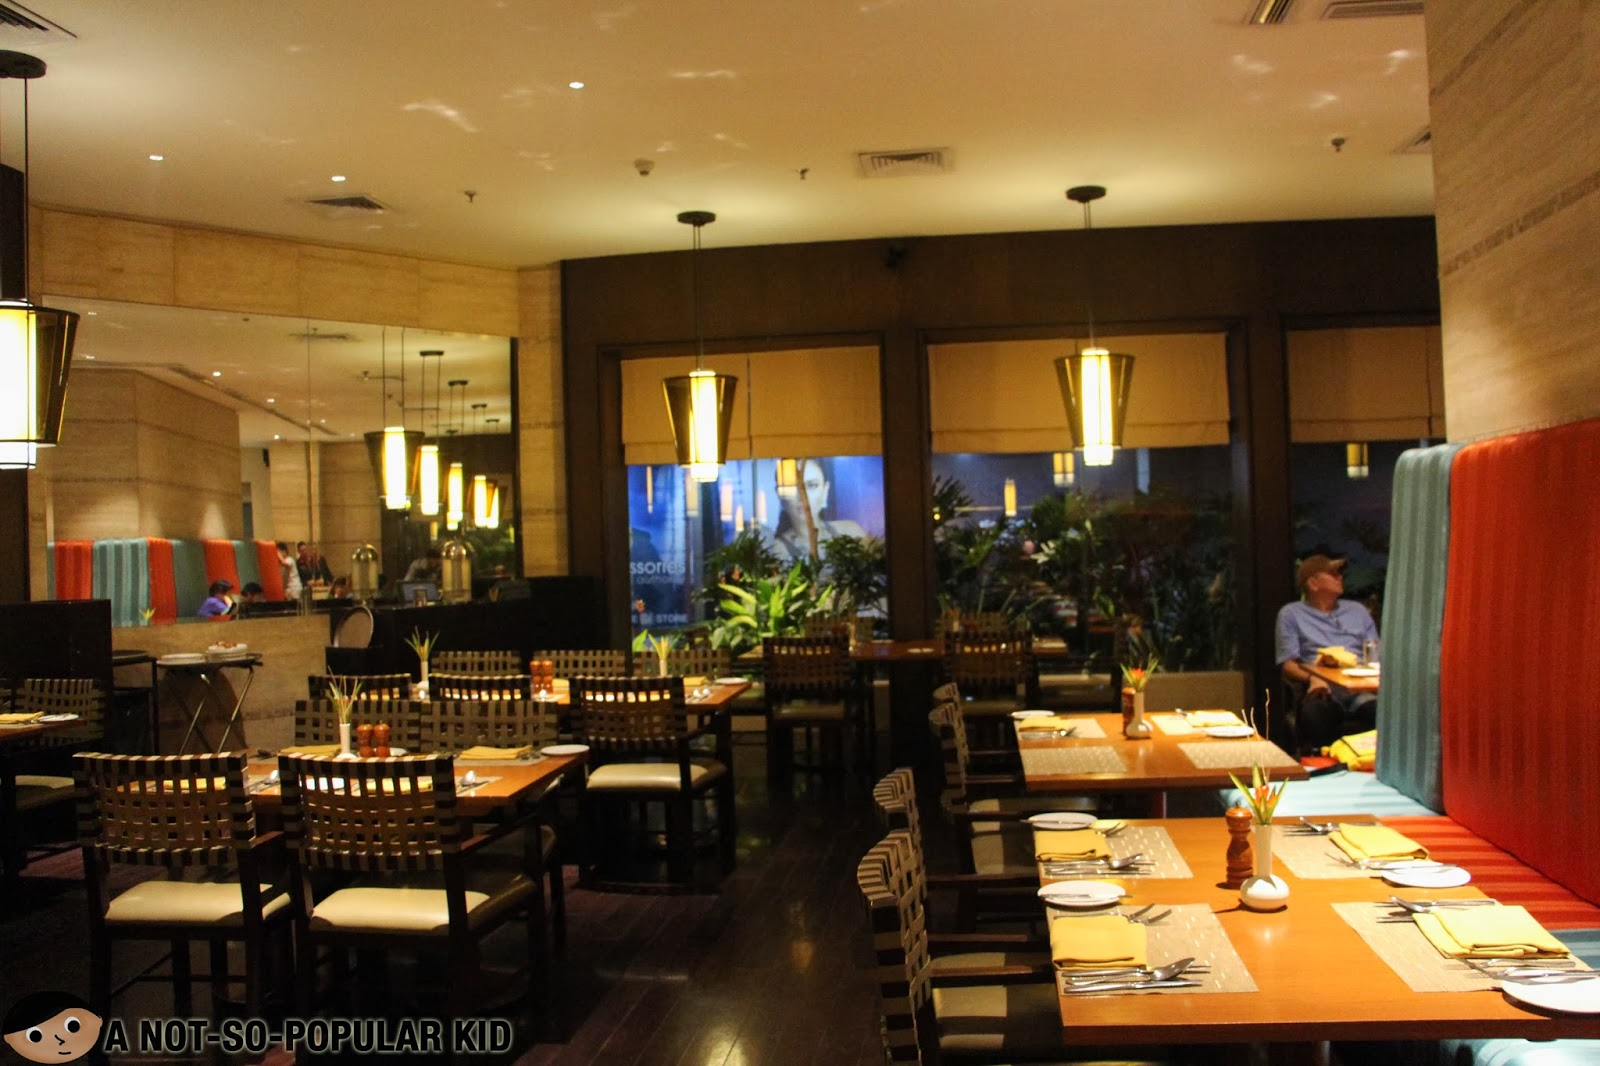 Dusit Thani's Basix Restaurant - the cozy and warm interior!